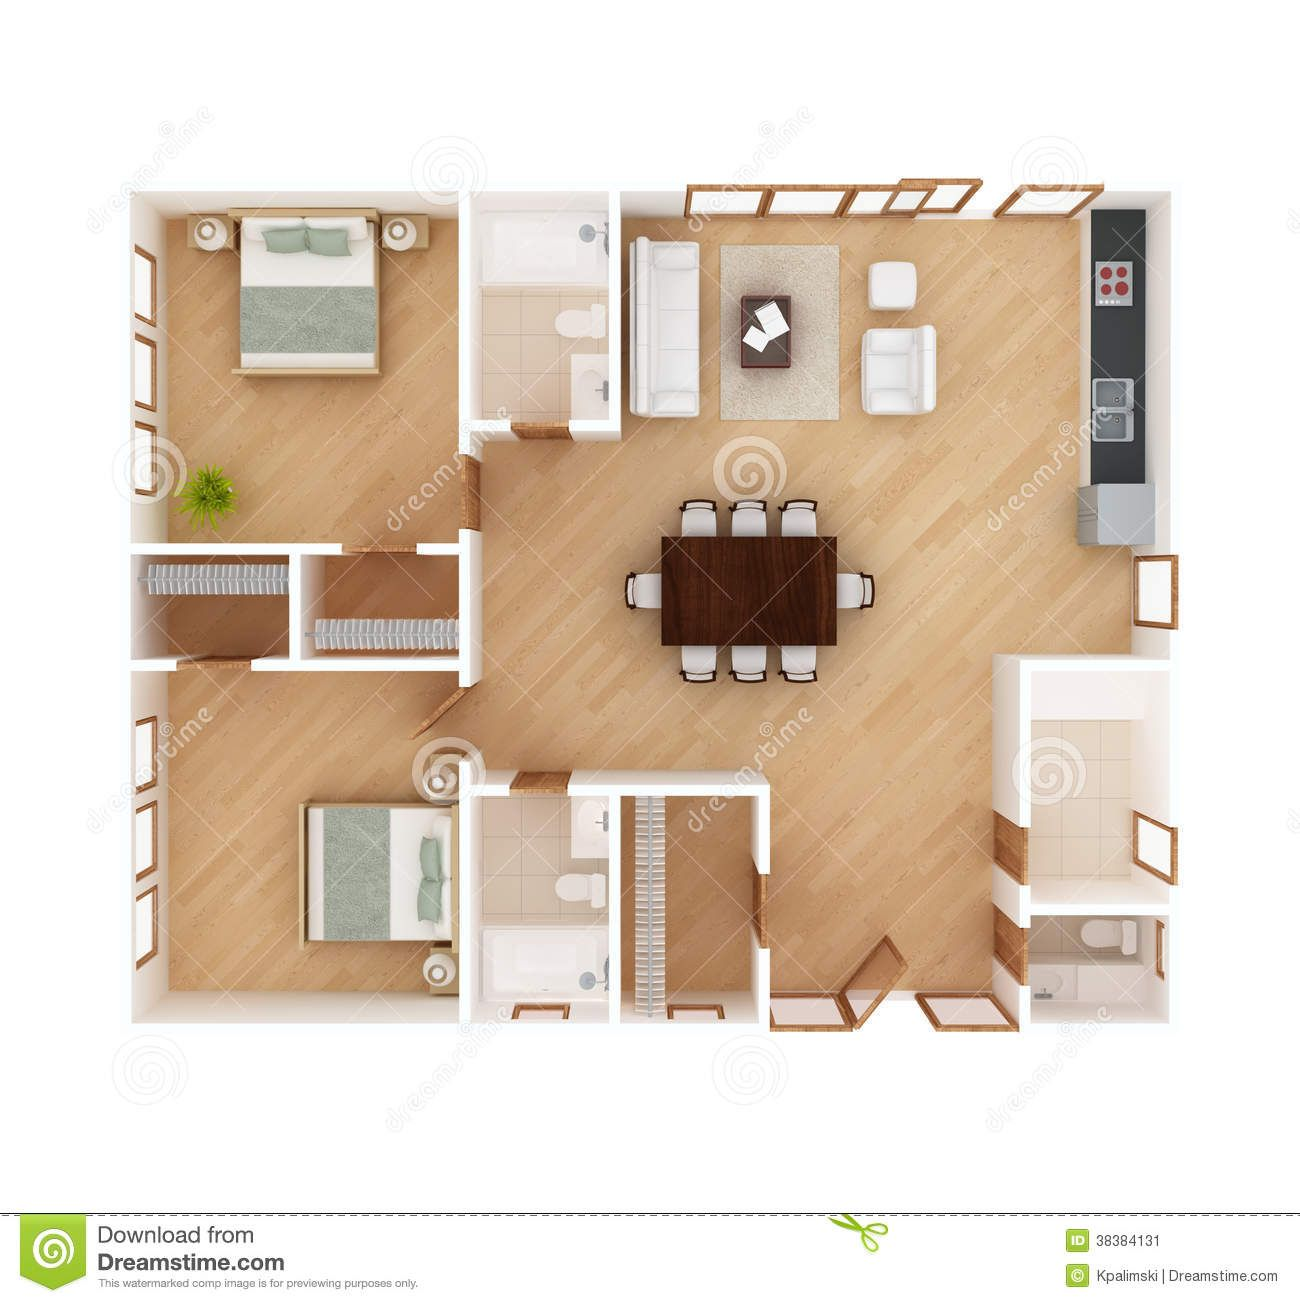 top townhouse floor plans. house plan top view isolated white and floor kerala home design plans